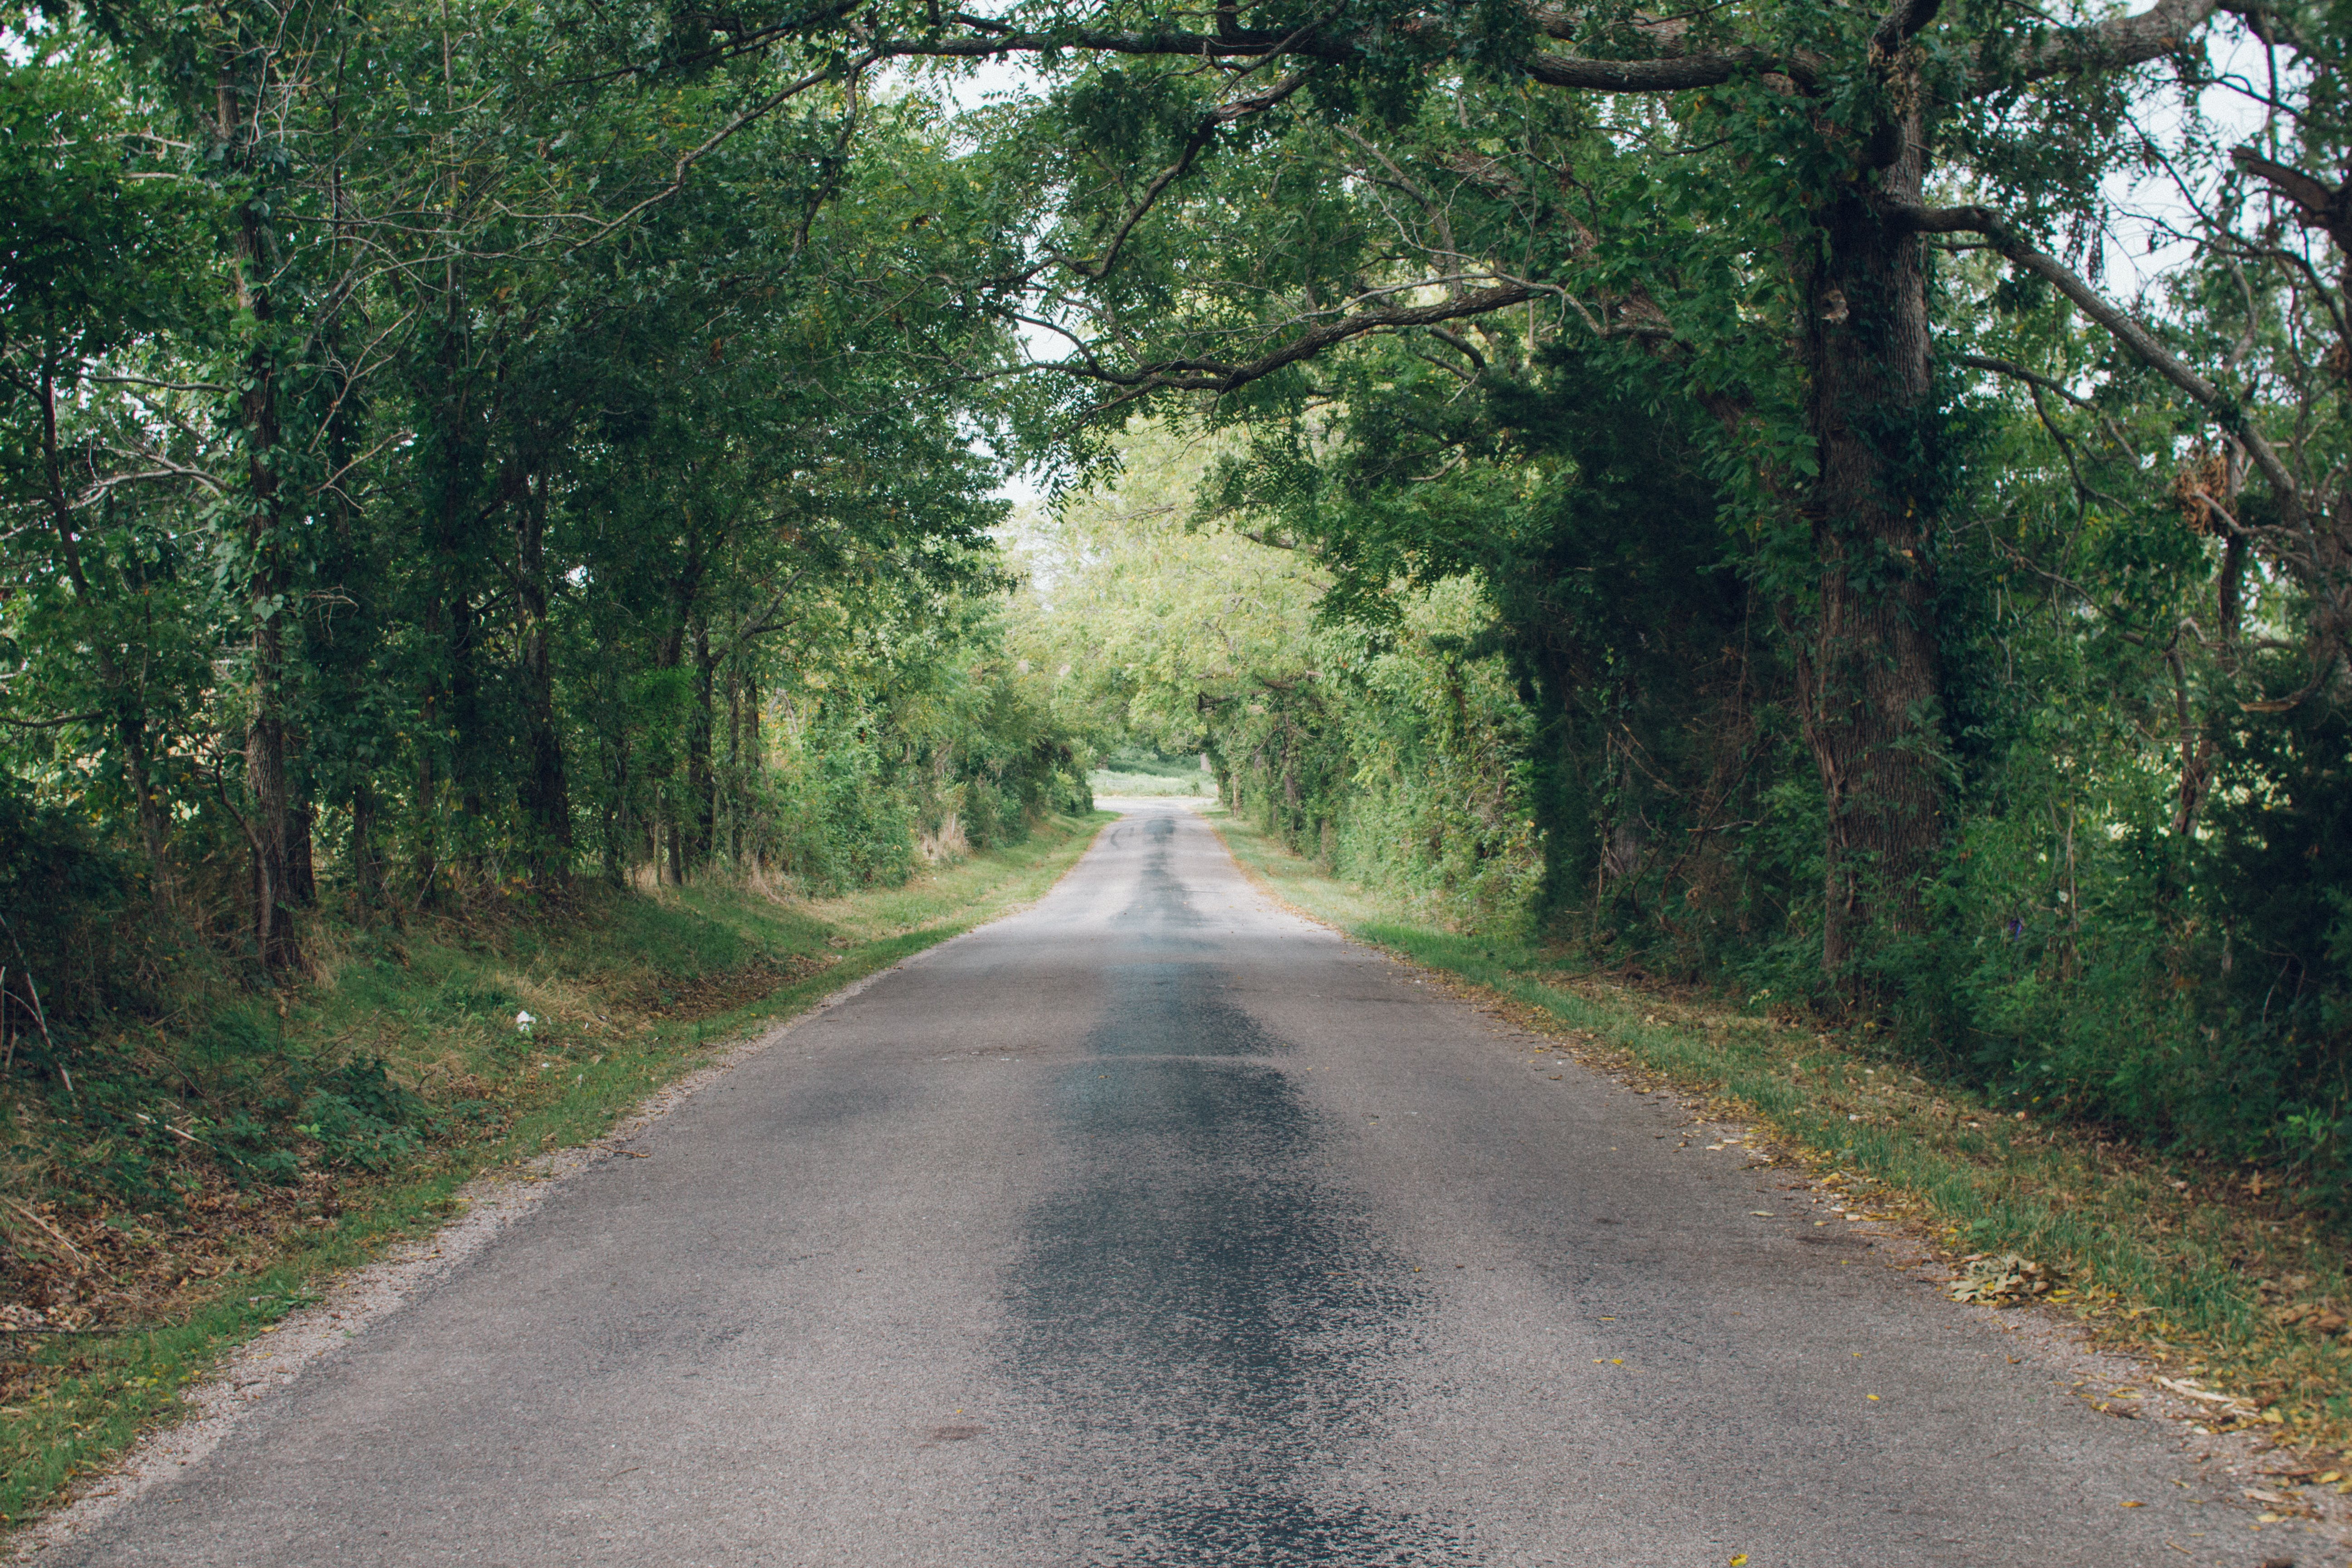 Gray Concrete Road Near Green Leafed Trees